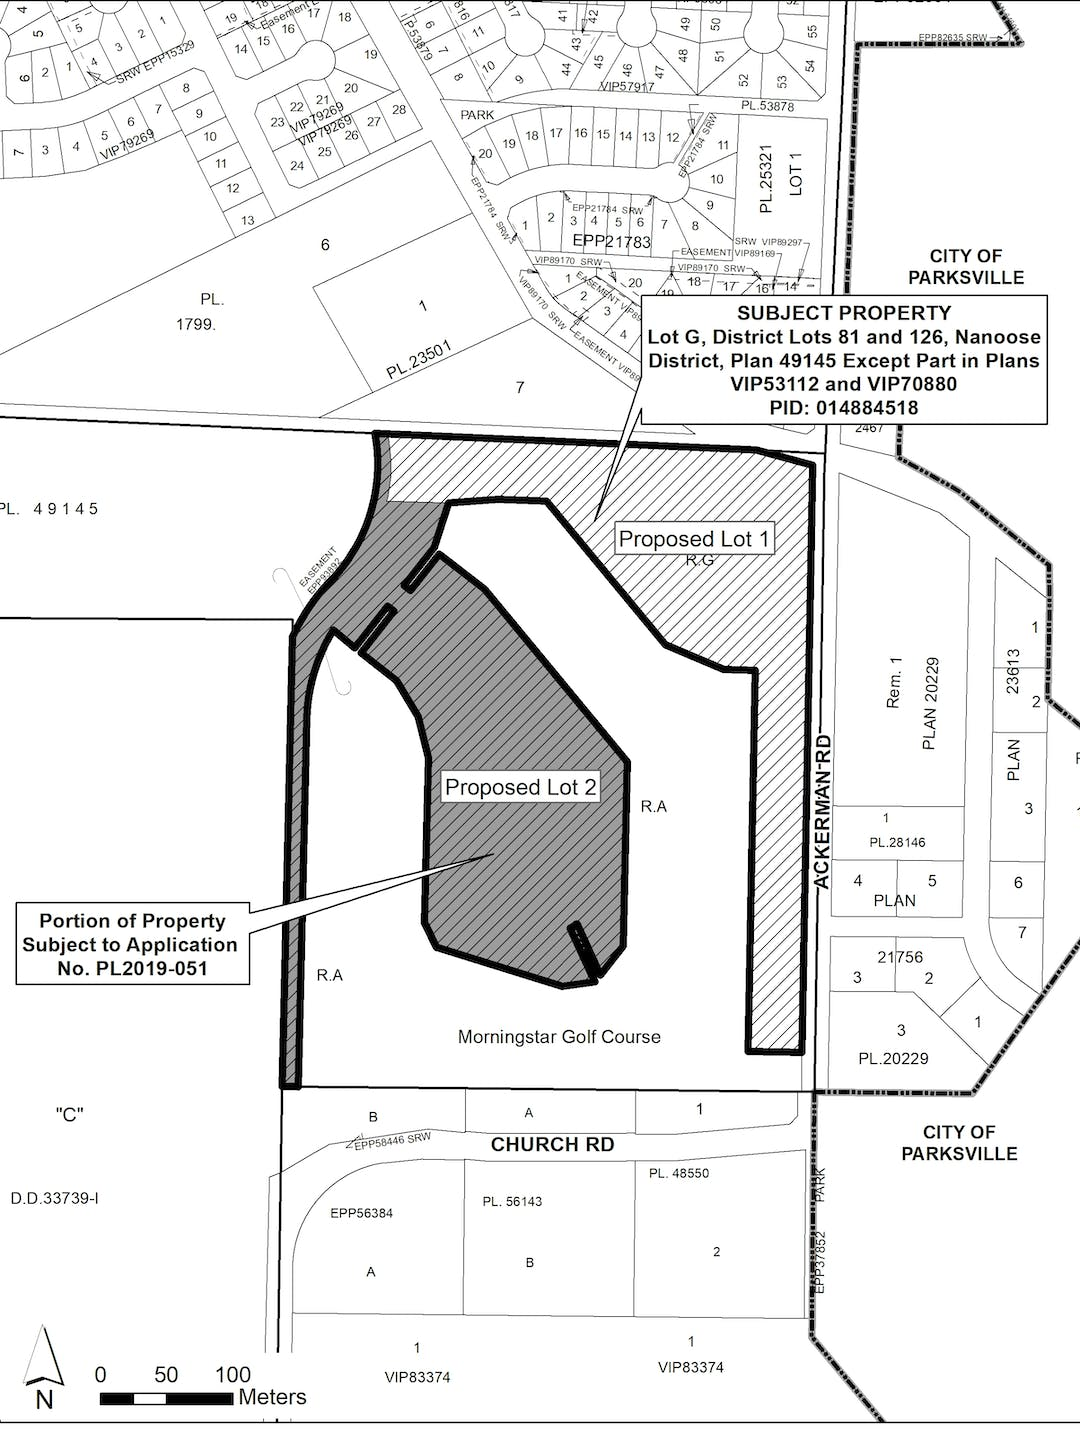 The RDN is currently looking for your input on zoning amendment application PL2019-051.